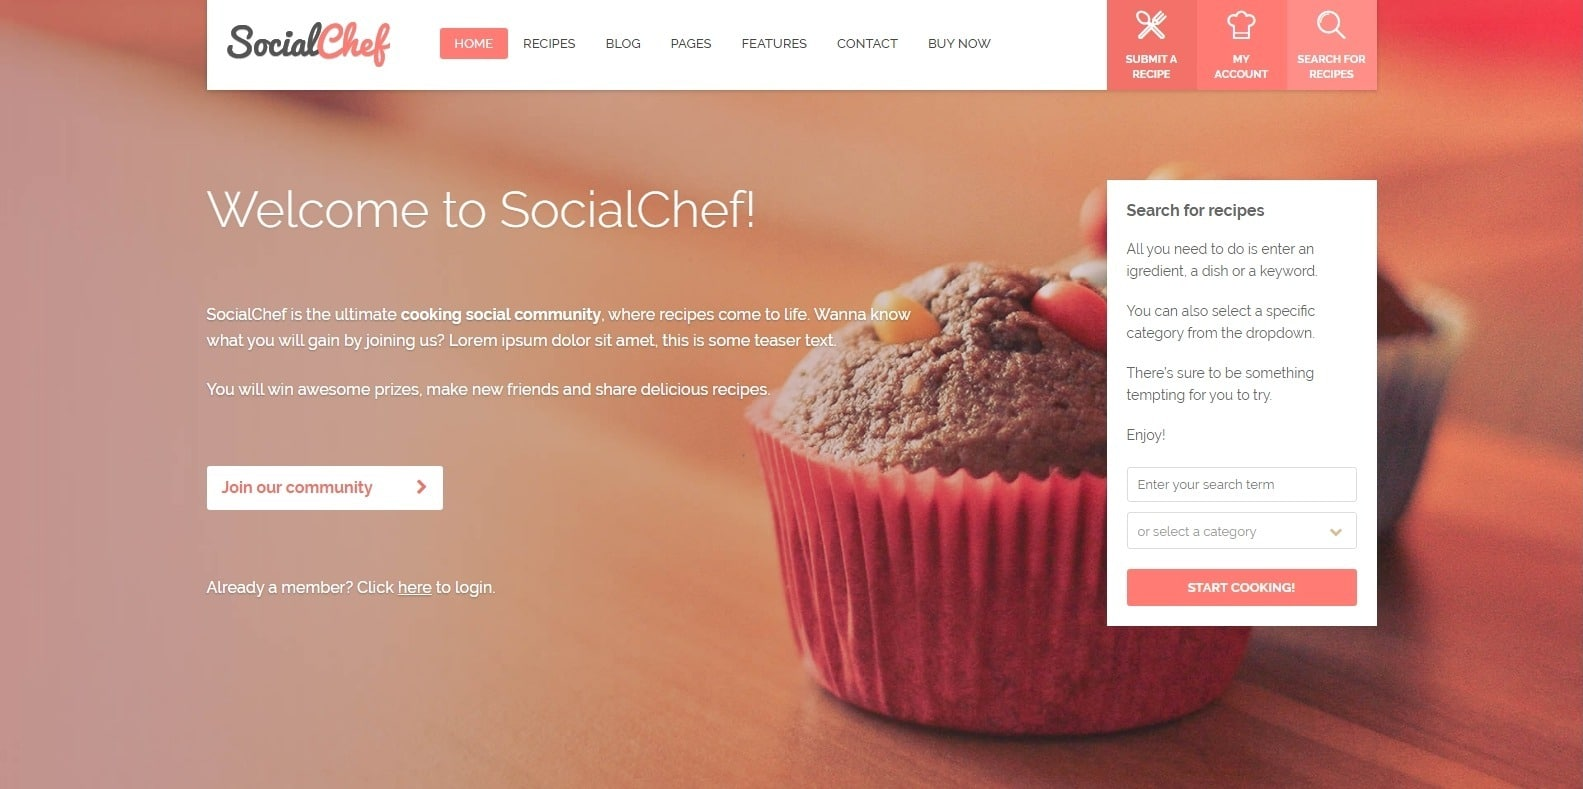 social-chef-food-blog-website-template